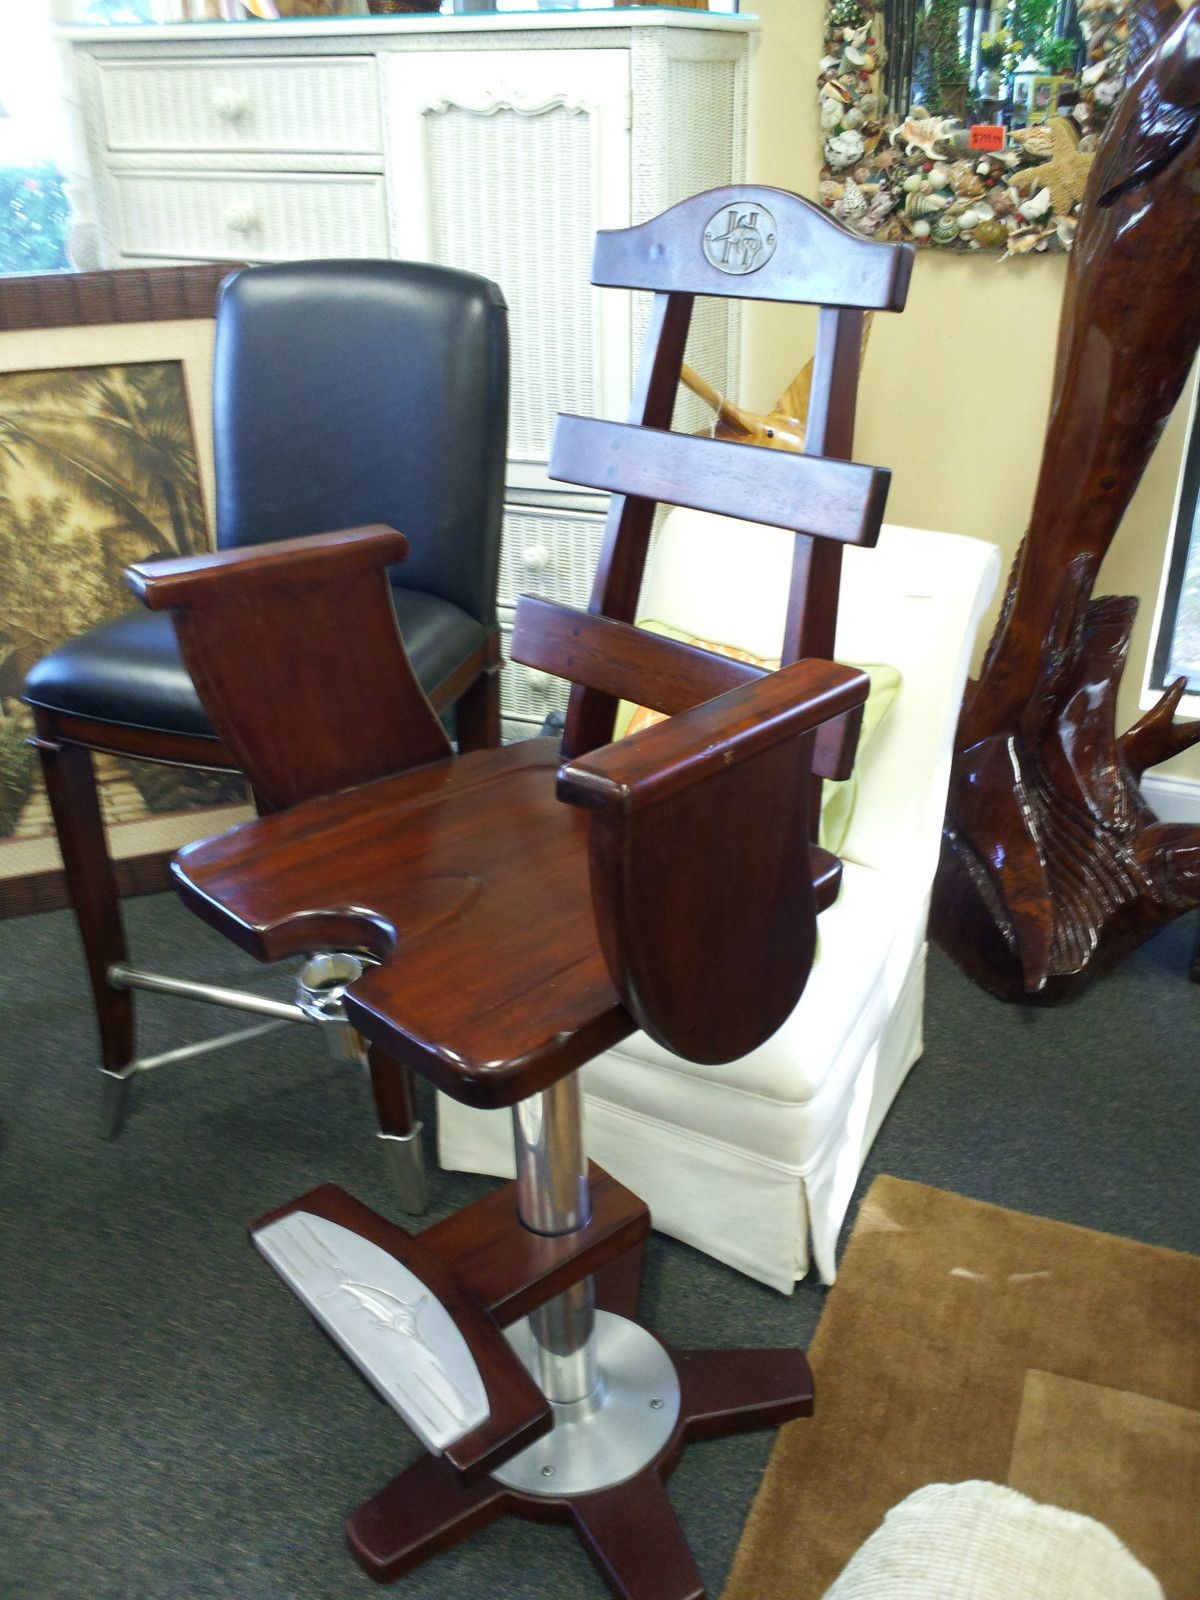 Stupendous This Is The Actual Thomasville Hemingway Pilar Fighting Pdpeps Interior Chair Design Pdpepsorg